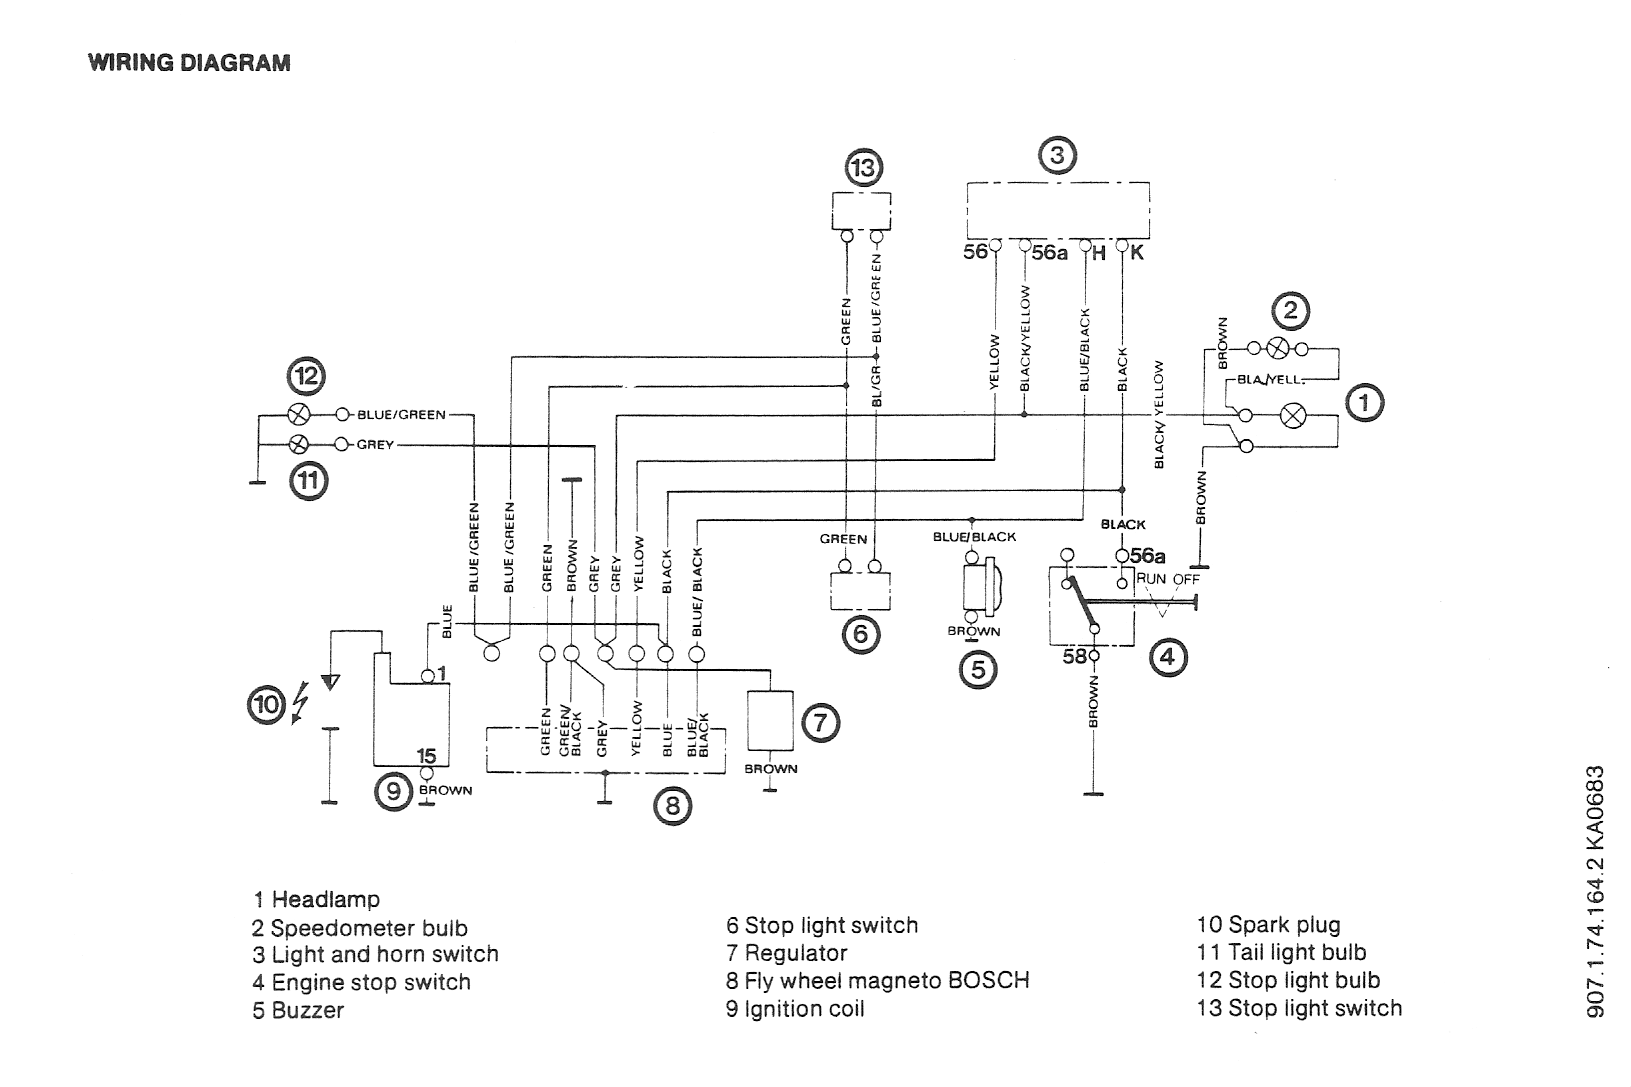 Puch_Mini_Maxi_wiring_diagram puch wiring diagrams moped wiki  at bakdesigns.co